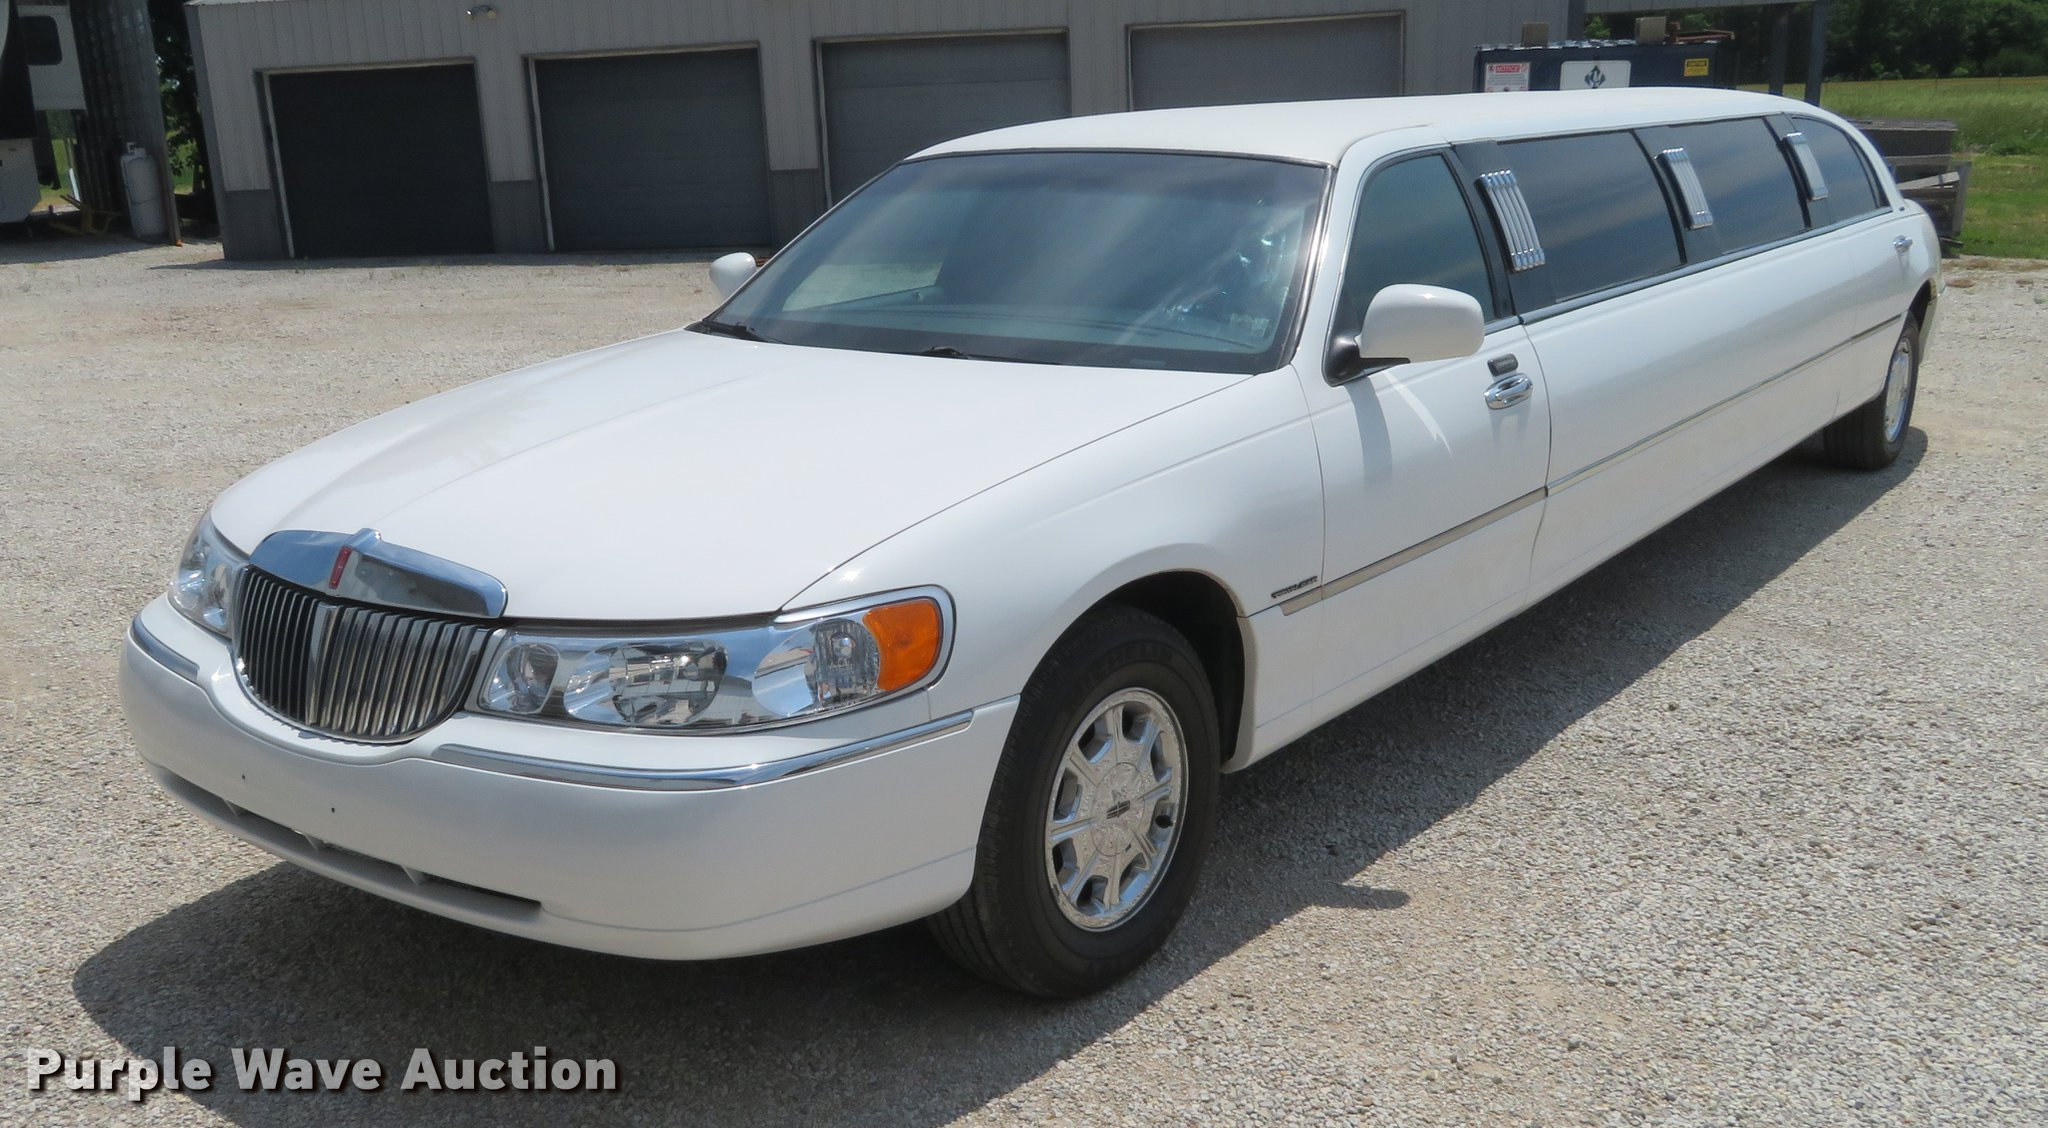 1999 Lincoln Town Car Executive Limousine Item Ej9613 So